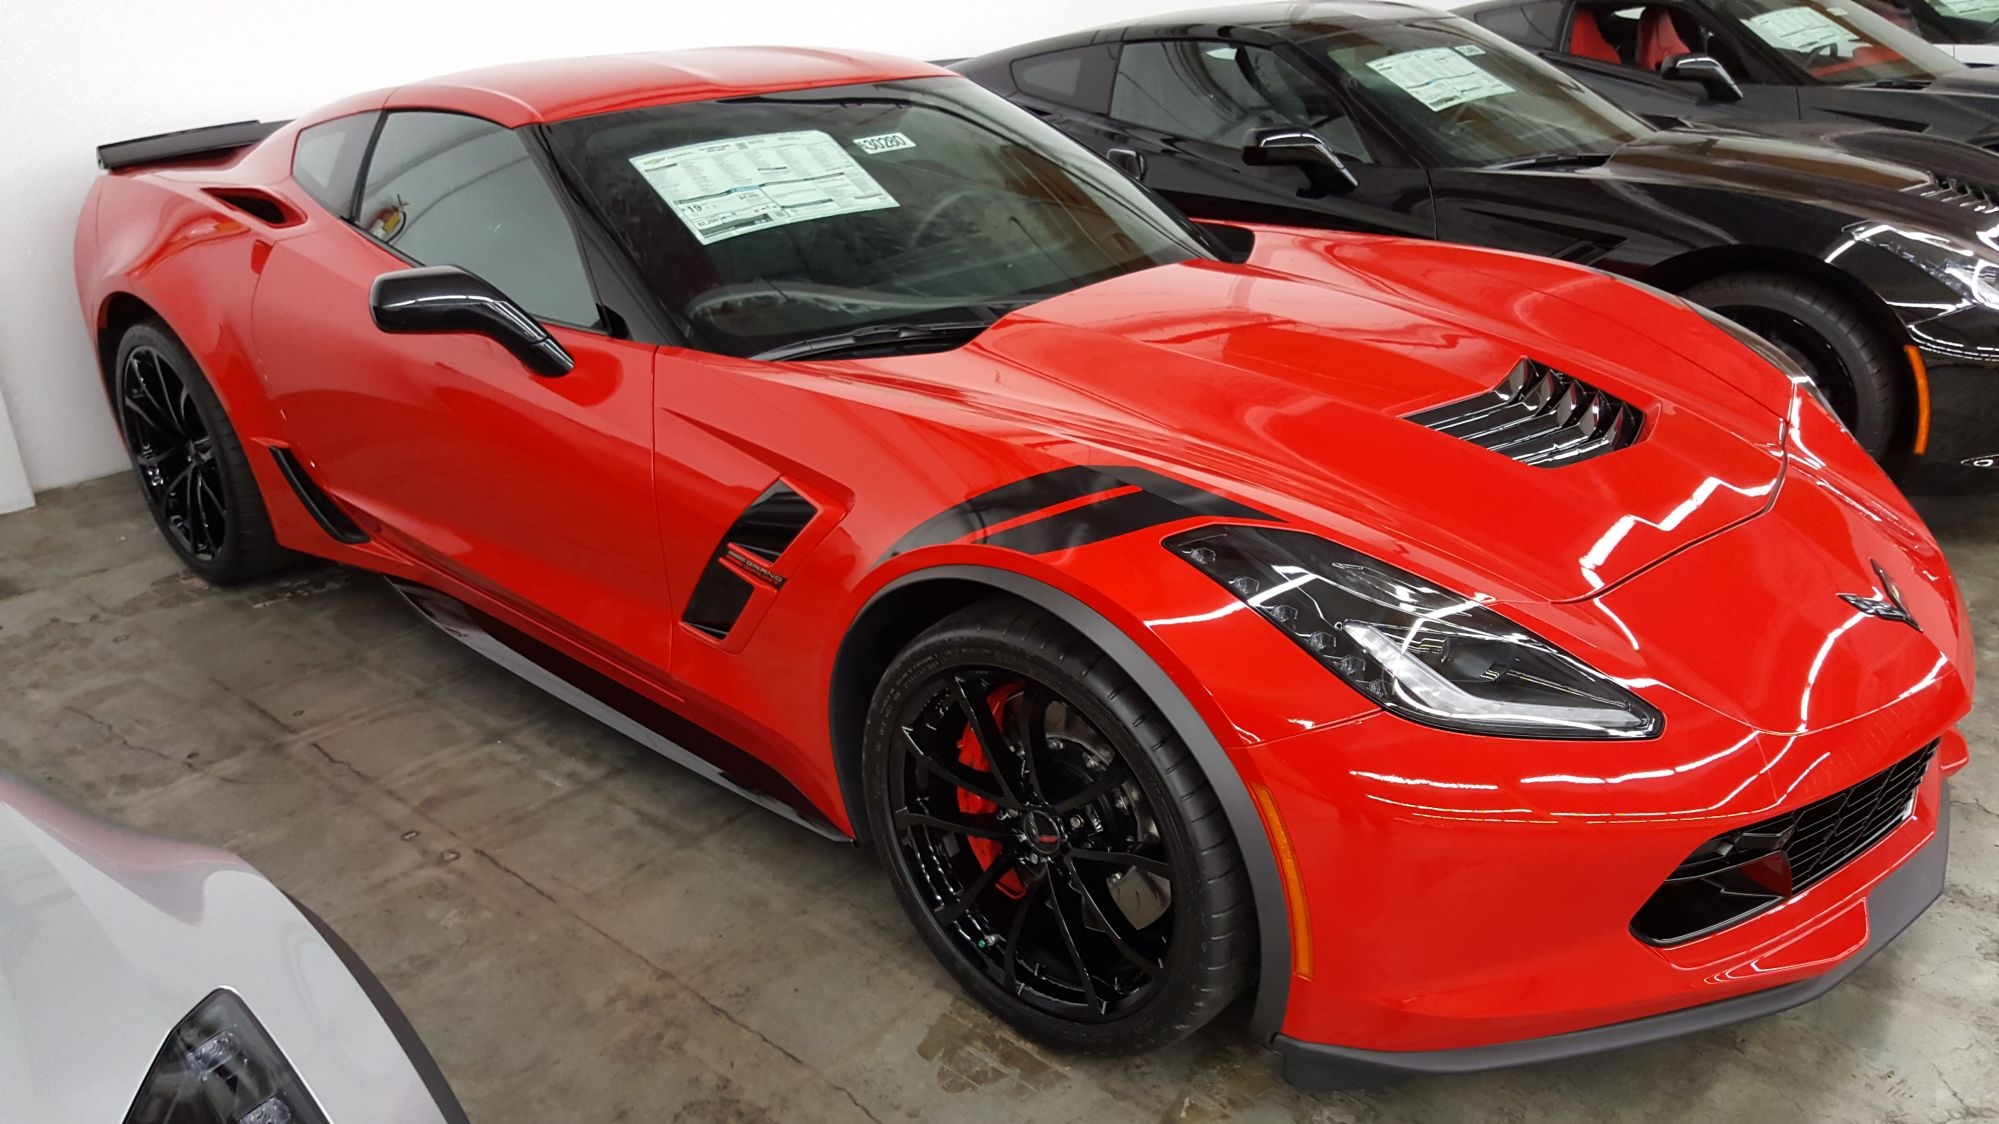 2017 Corvette Inventory At Boardwalk Chevrolet Great Sale Prices Throughout Red Mirrors For Sale (Image 1 of 15)